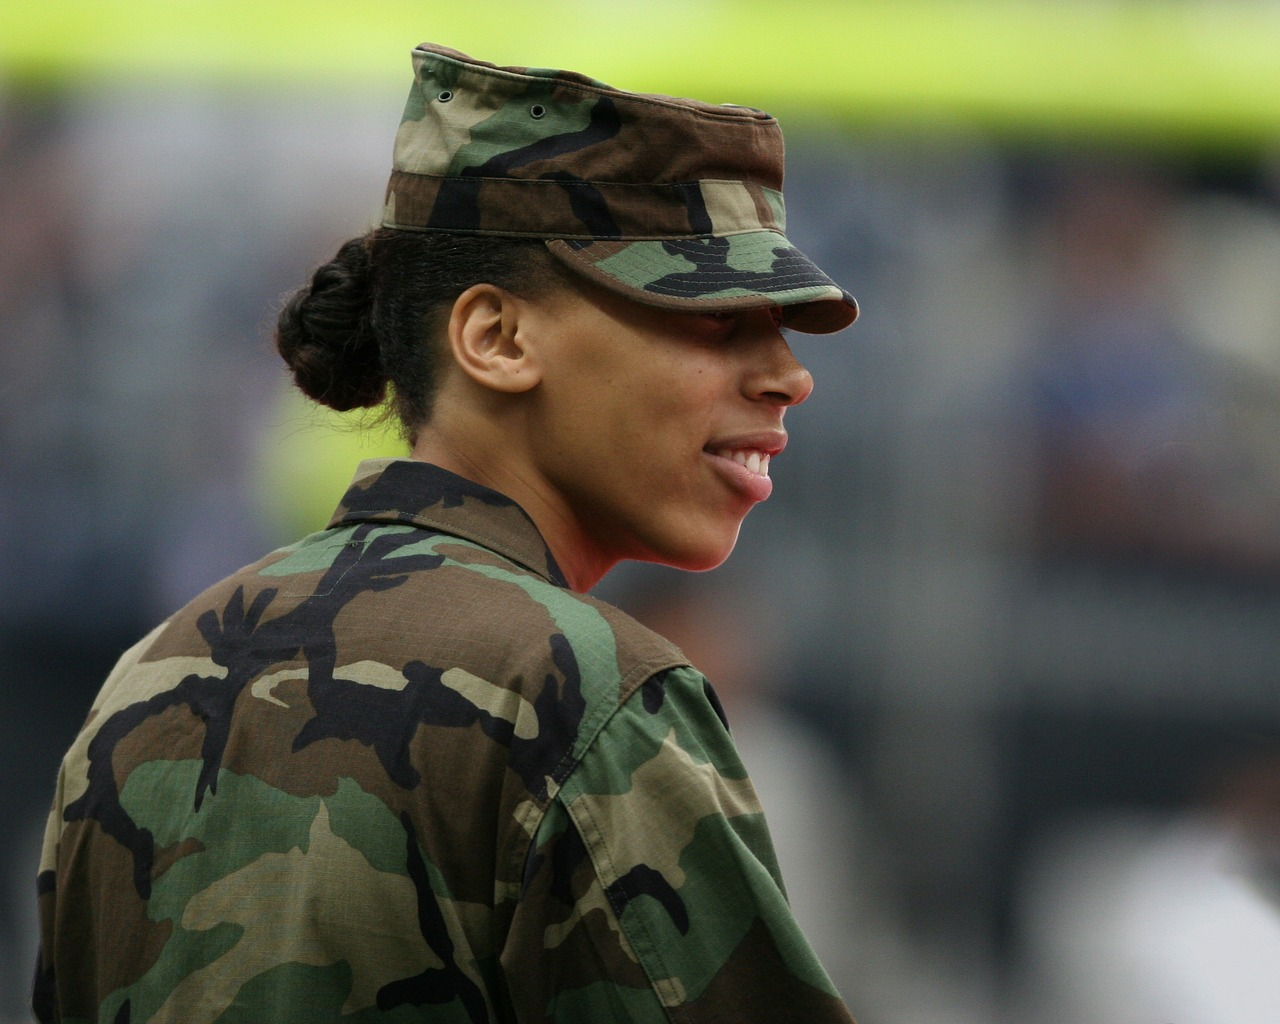 should females in the military be excluded From women serving in combat roles, segregation and civil rights, to allowing the lgbt community in it's ranks, the military is typically 10-20 years ahead of american society on dispelling certain prejudices.